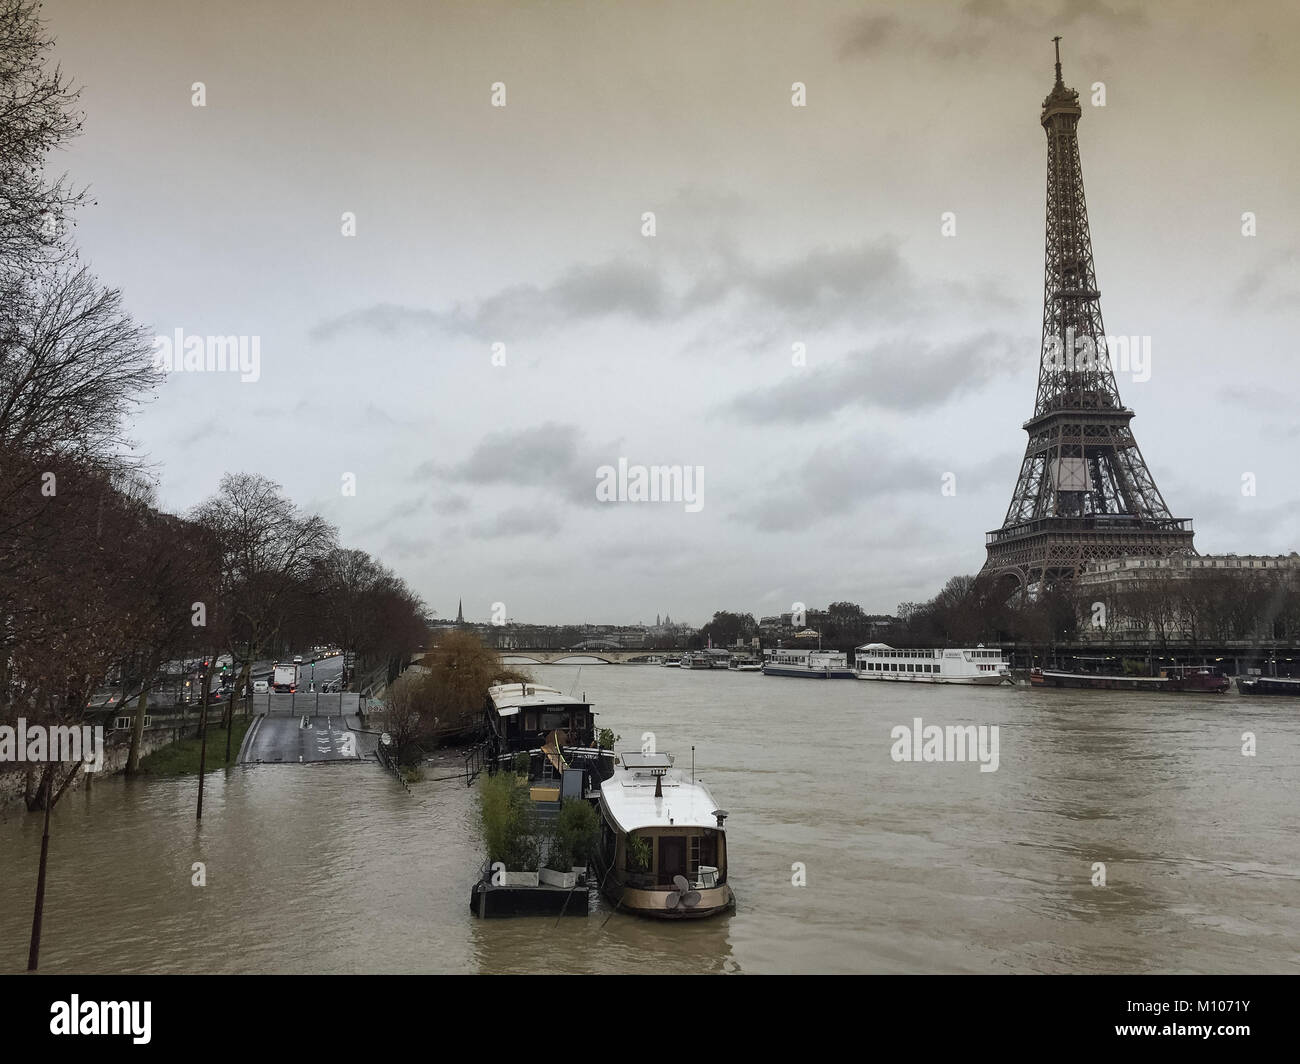 Paris, France. 25th Jan, 2018. Flood water keeps rising in Paris, River Seine in flood January 25 2018 Credit: RichFearon/Alamy - Stock Image